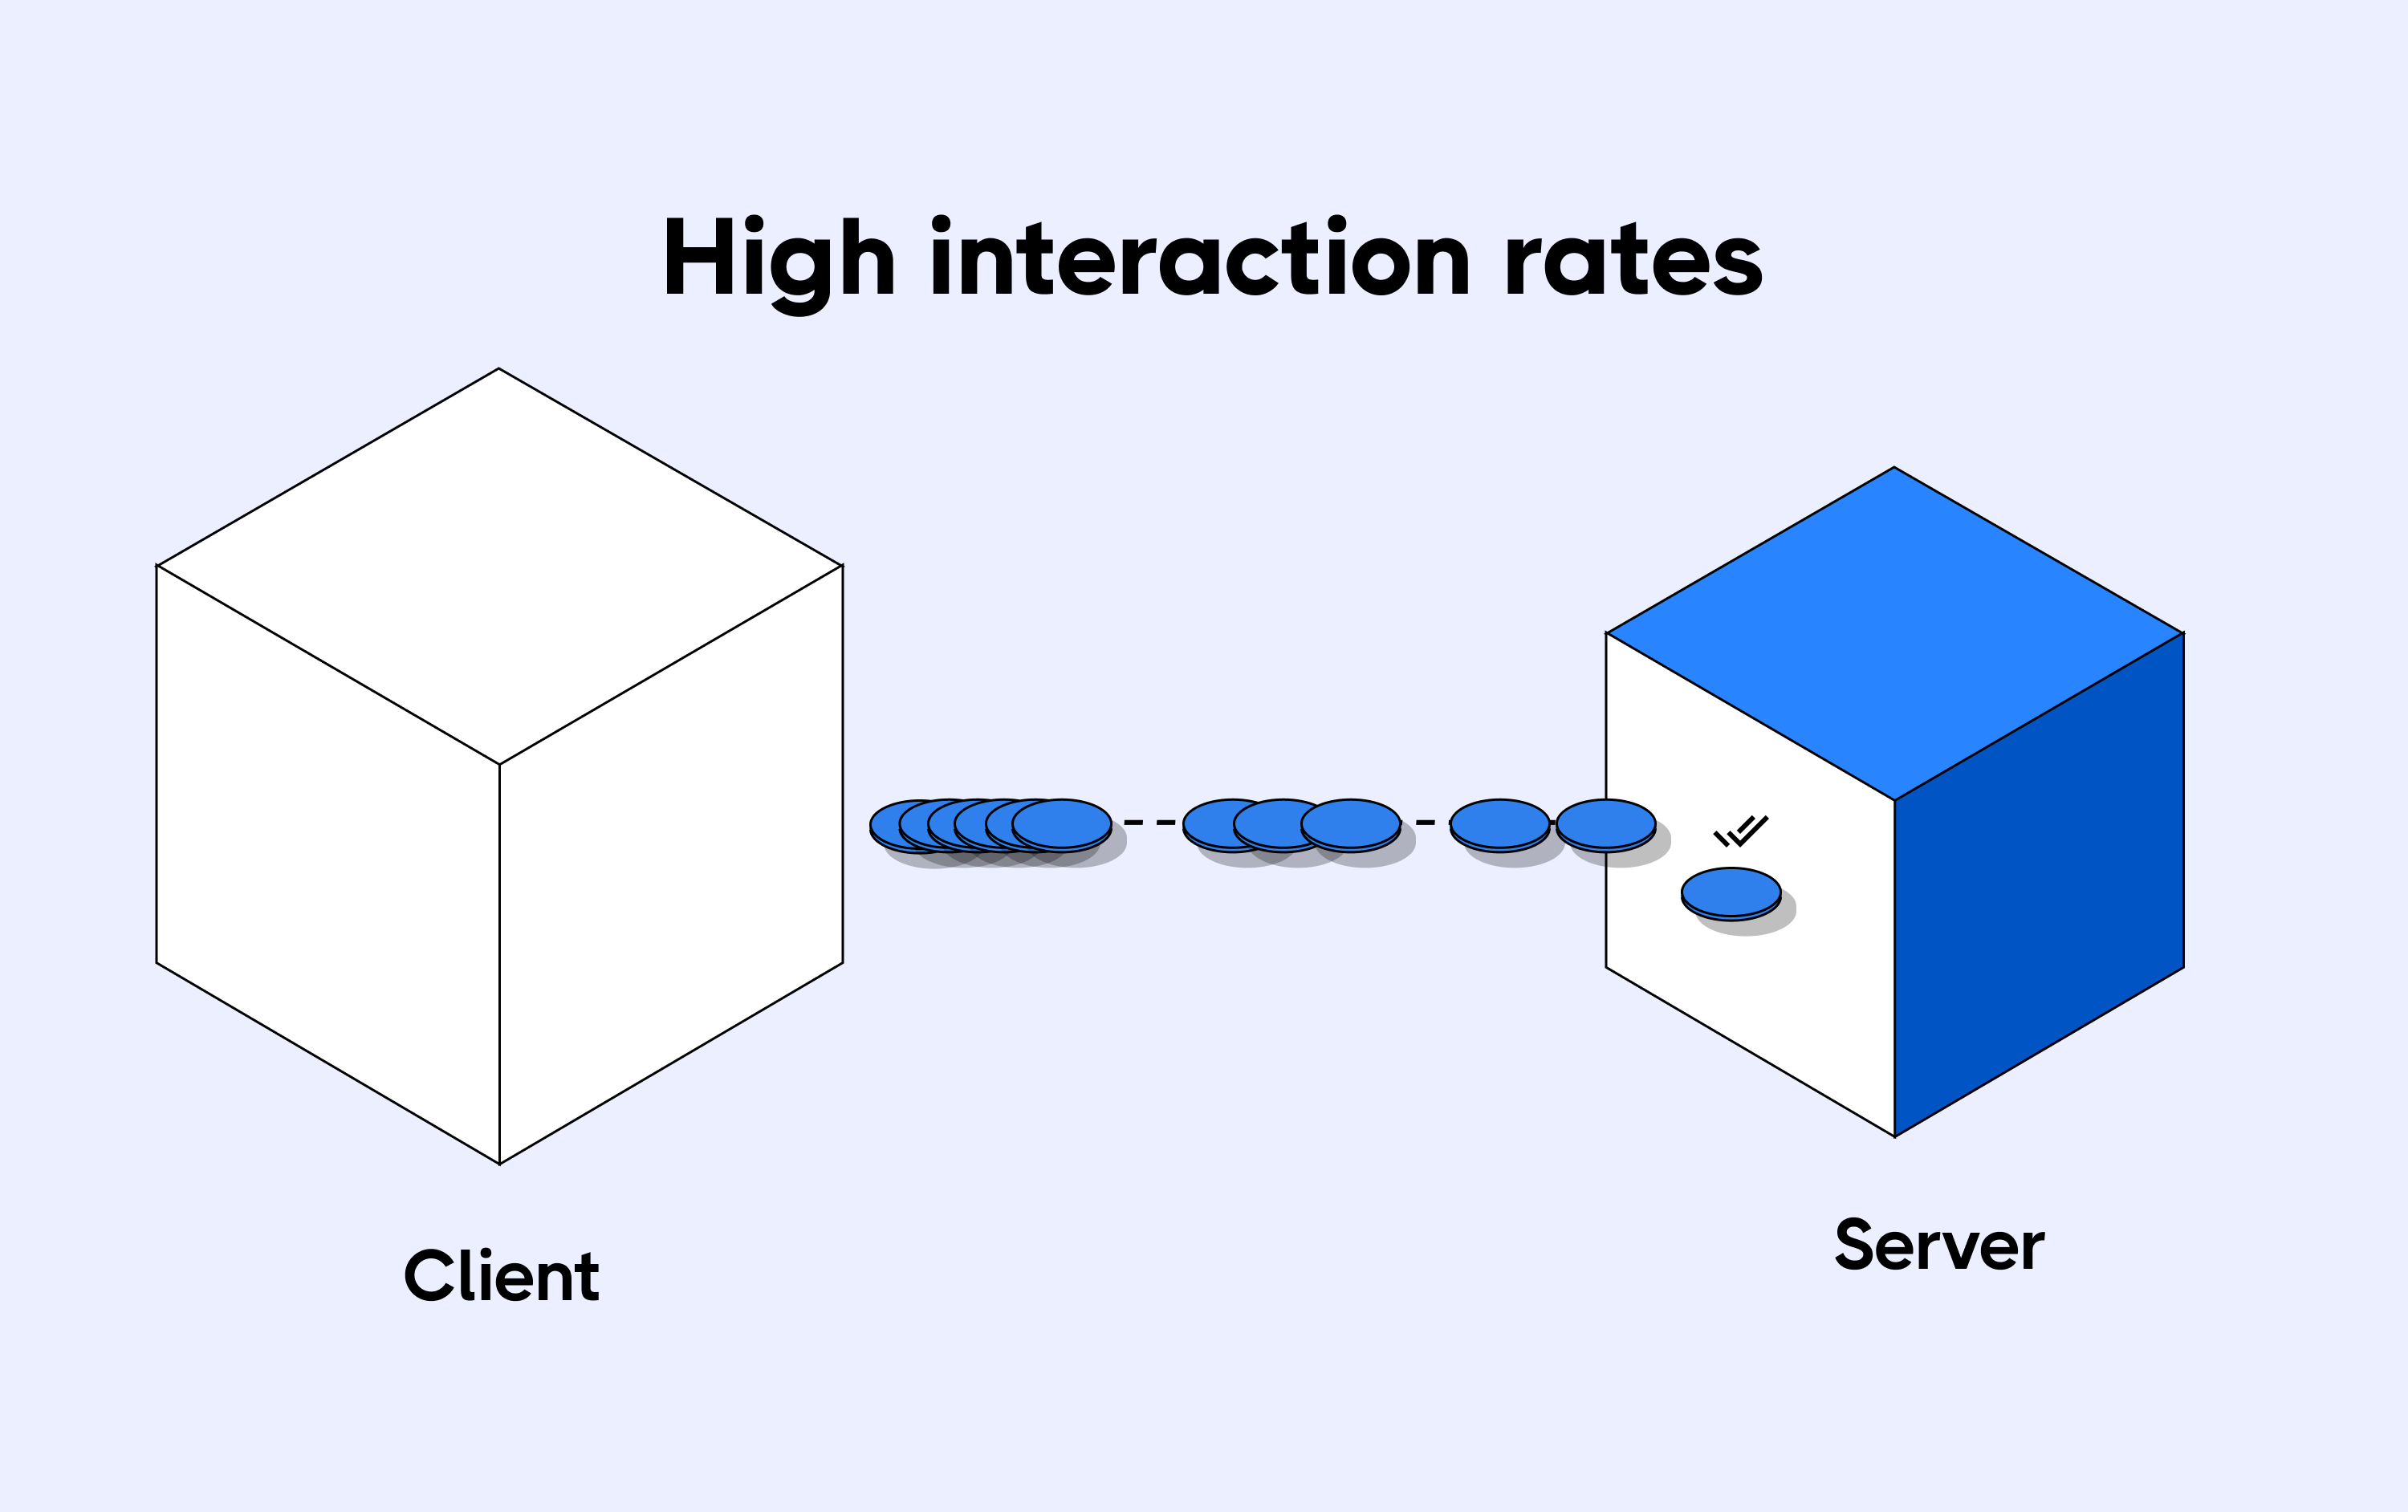 Scalability issues to handle high interaction rates